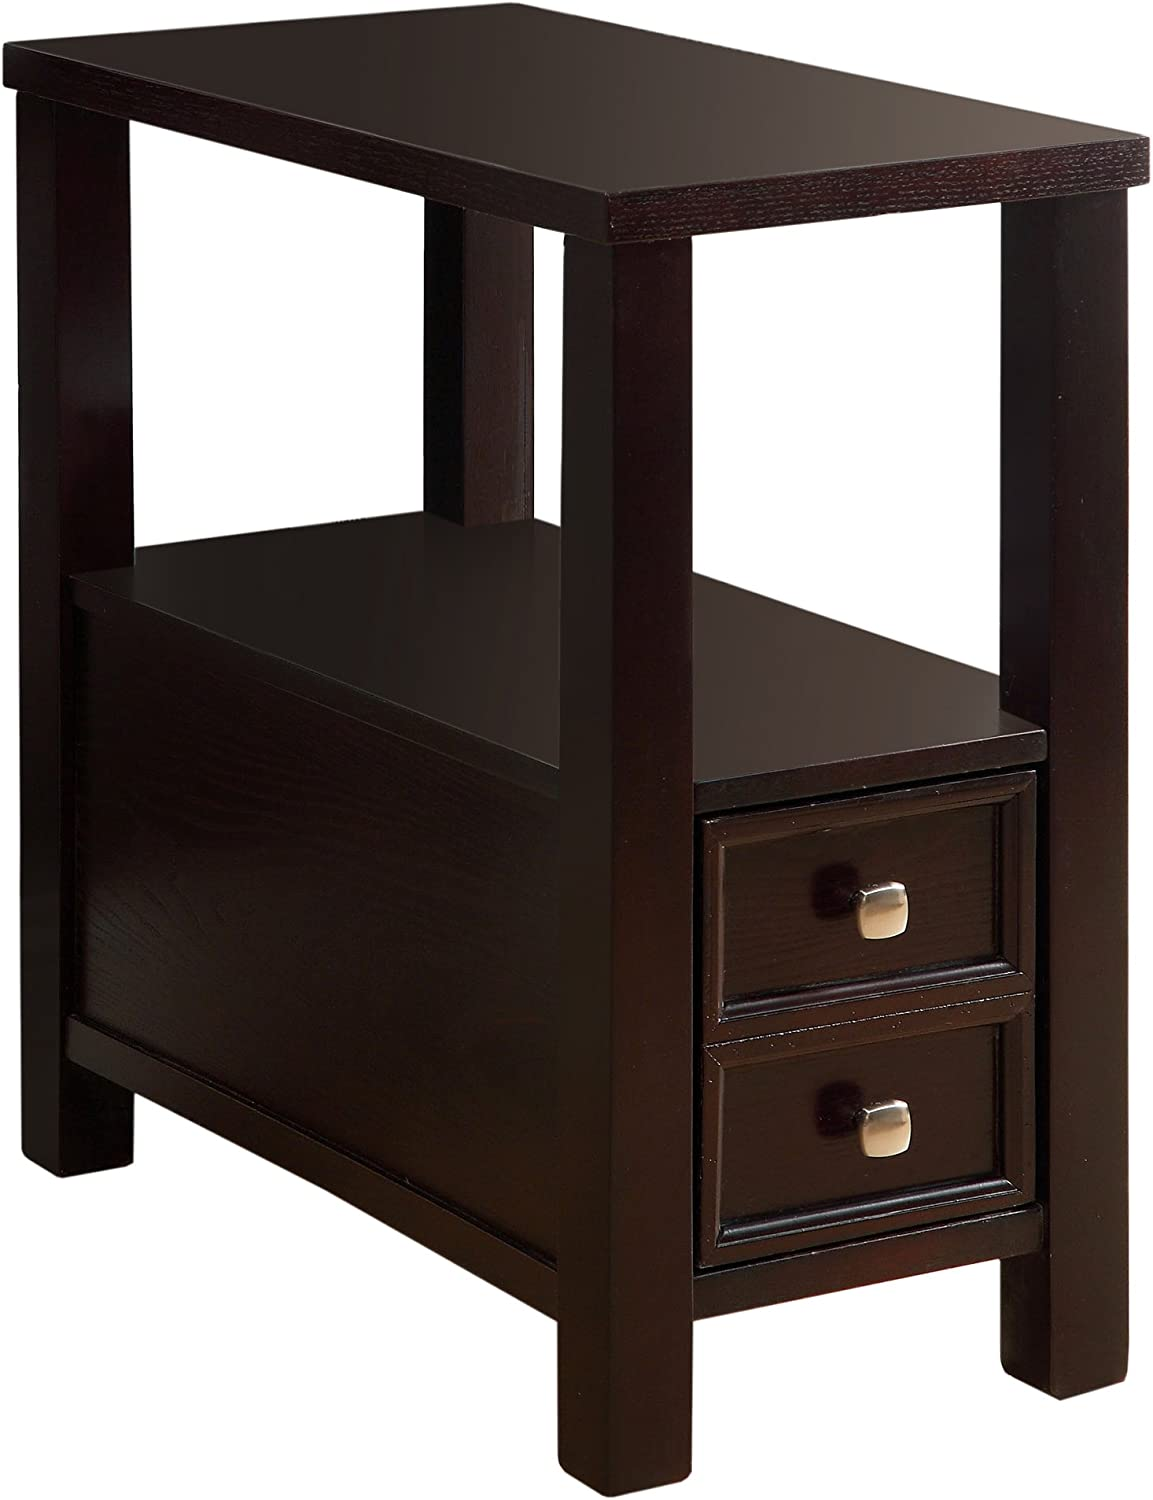 Furniture of America Statice 1-Drawer Side Table, Espresso